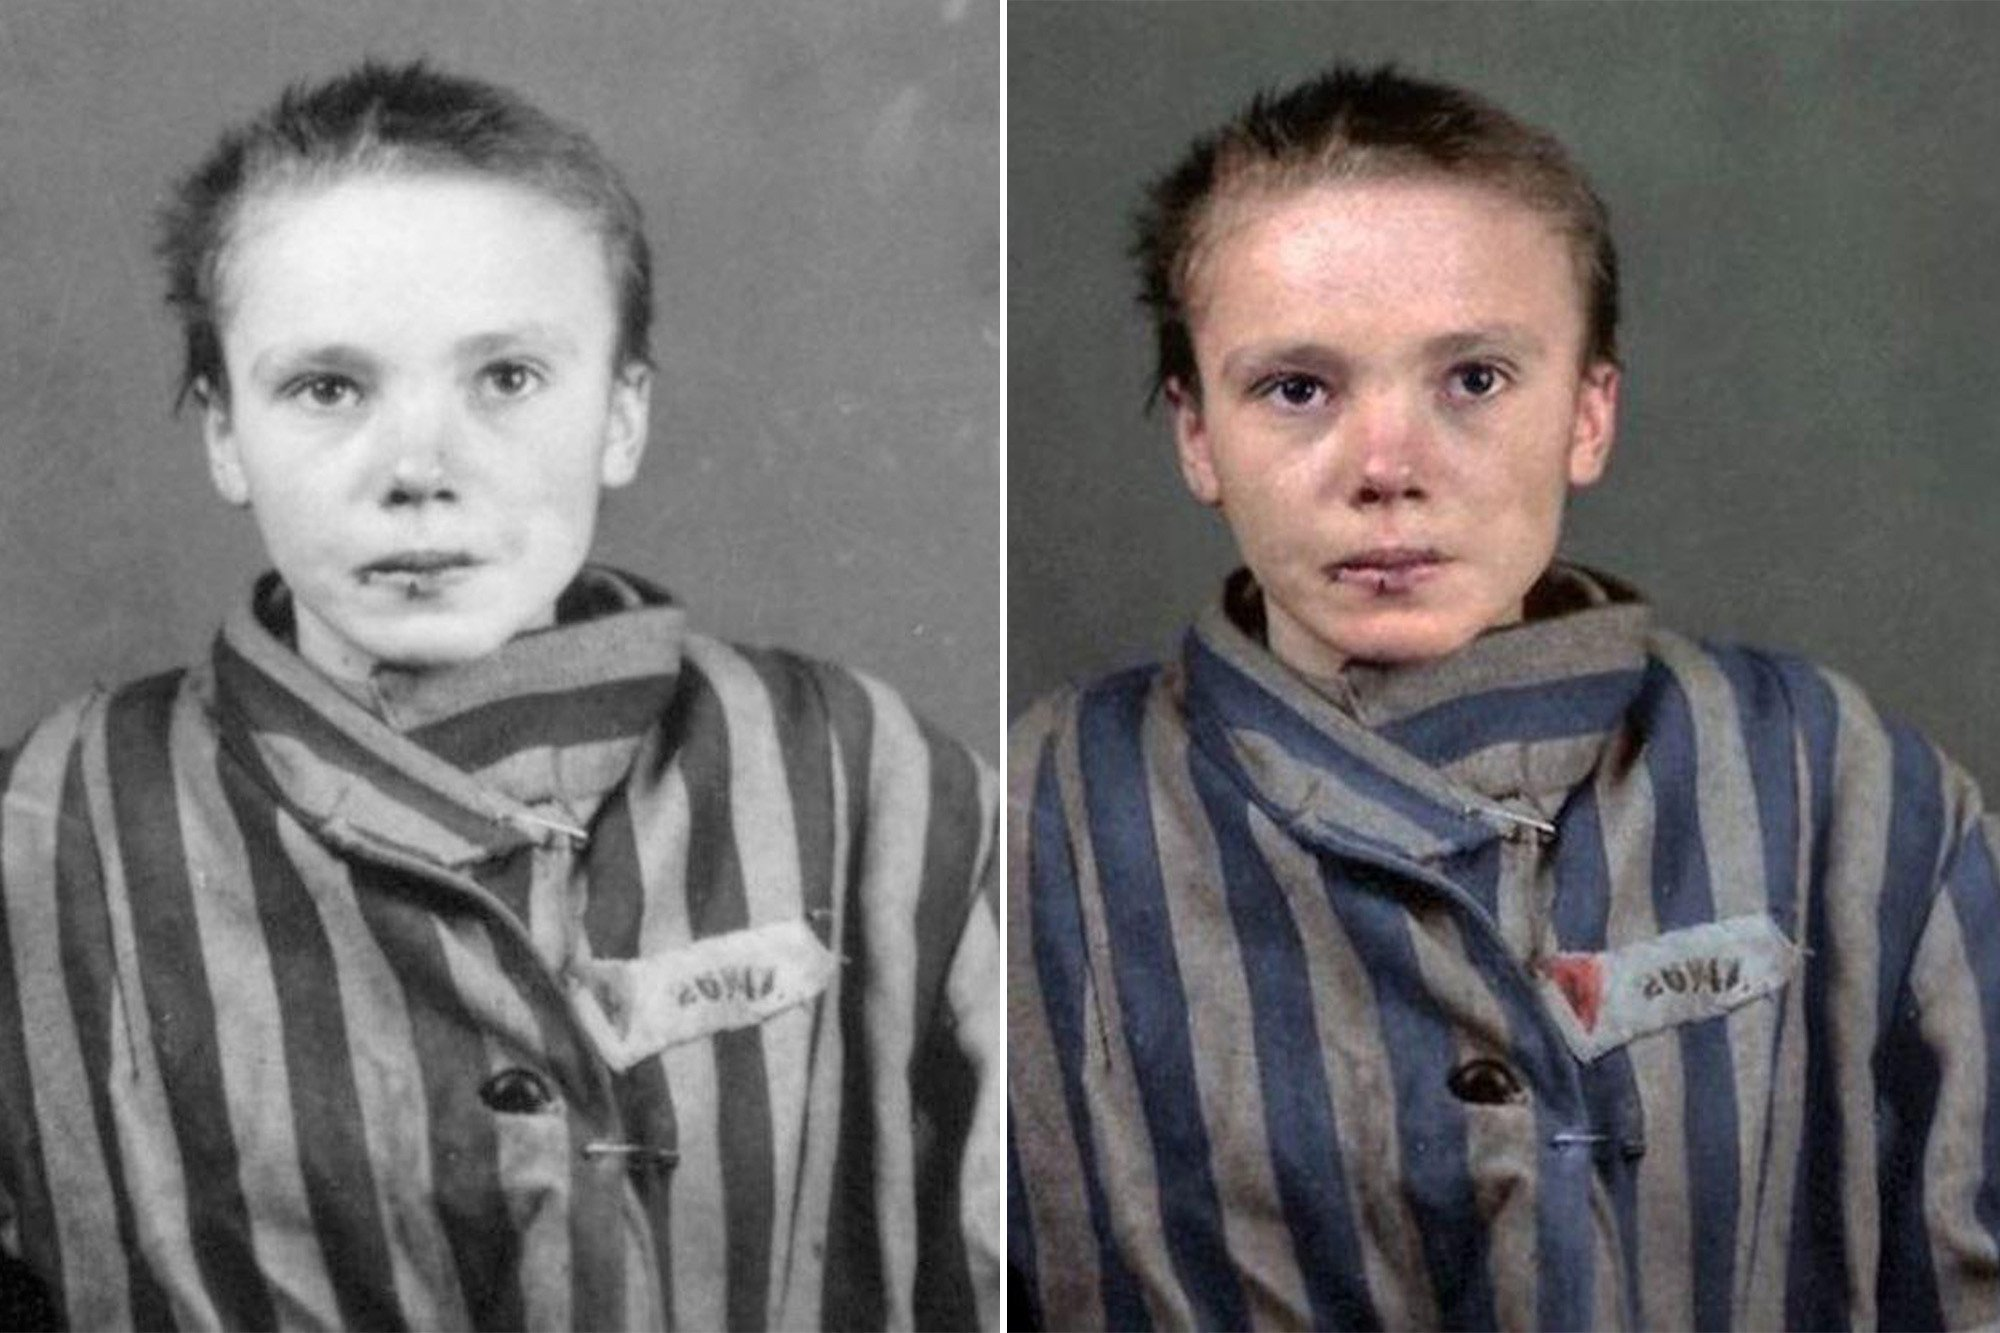 These images from the Holocaust are even more chilling in color